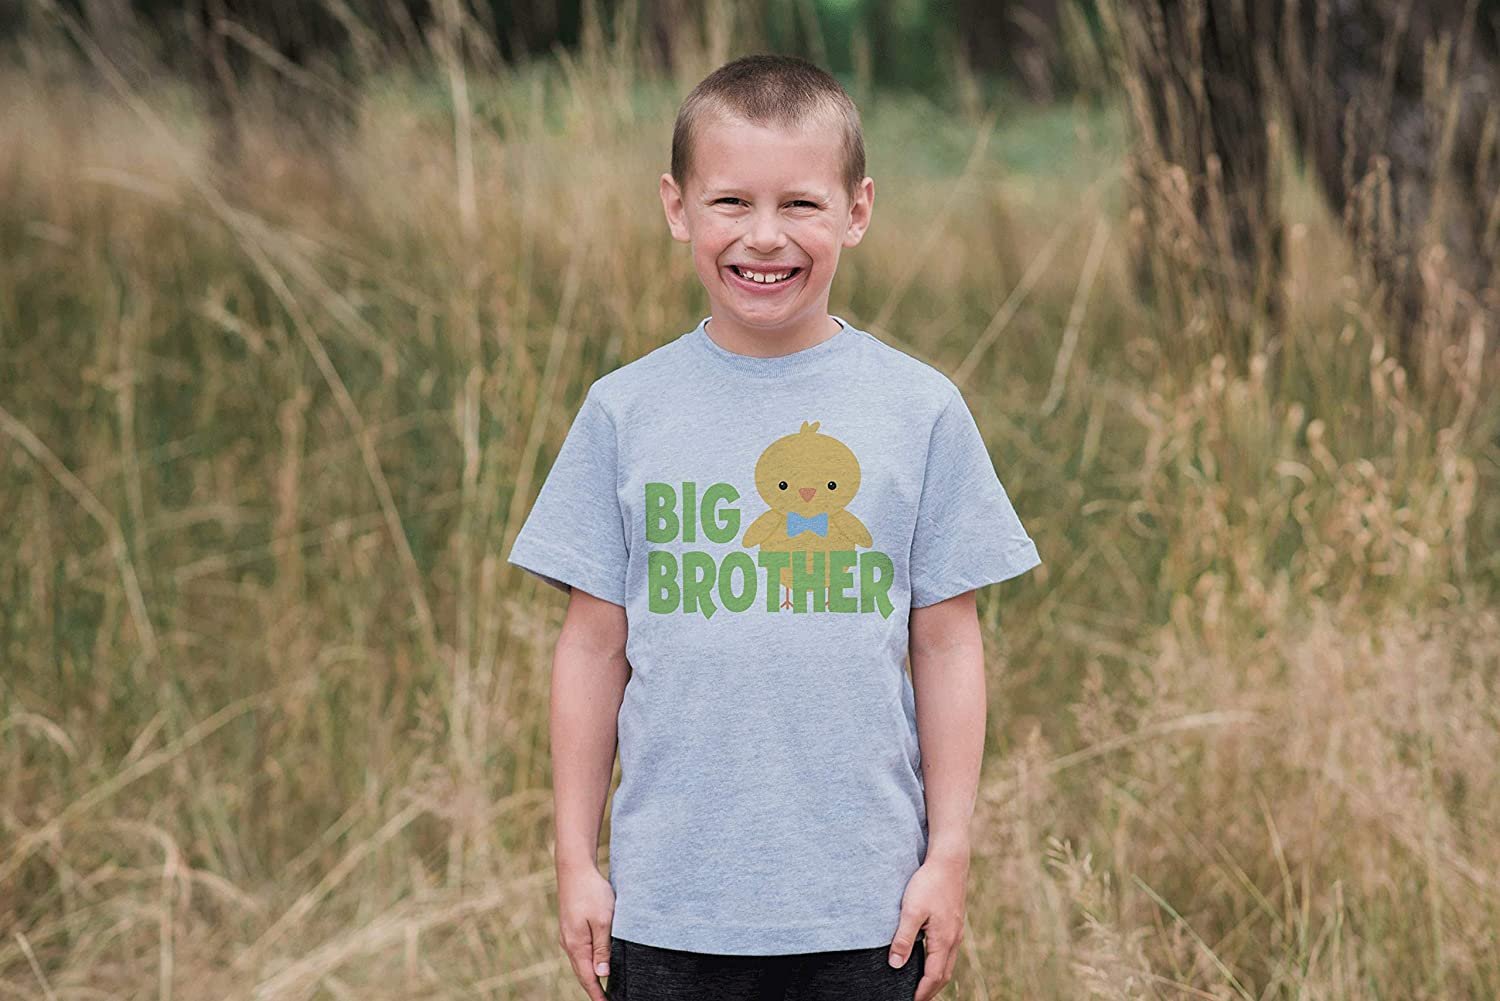 7 ate 9 Apparel Big Brother Boys Novelty Easter Tshirt